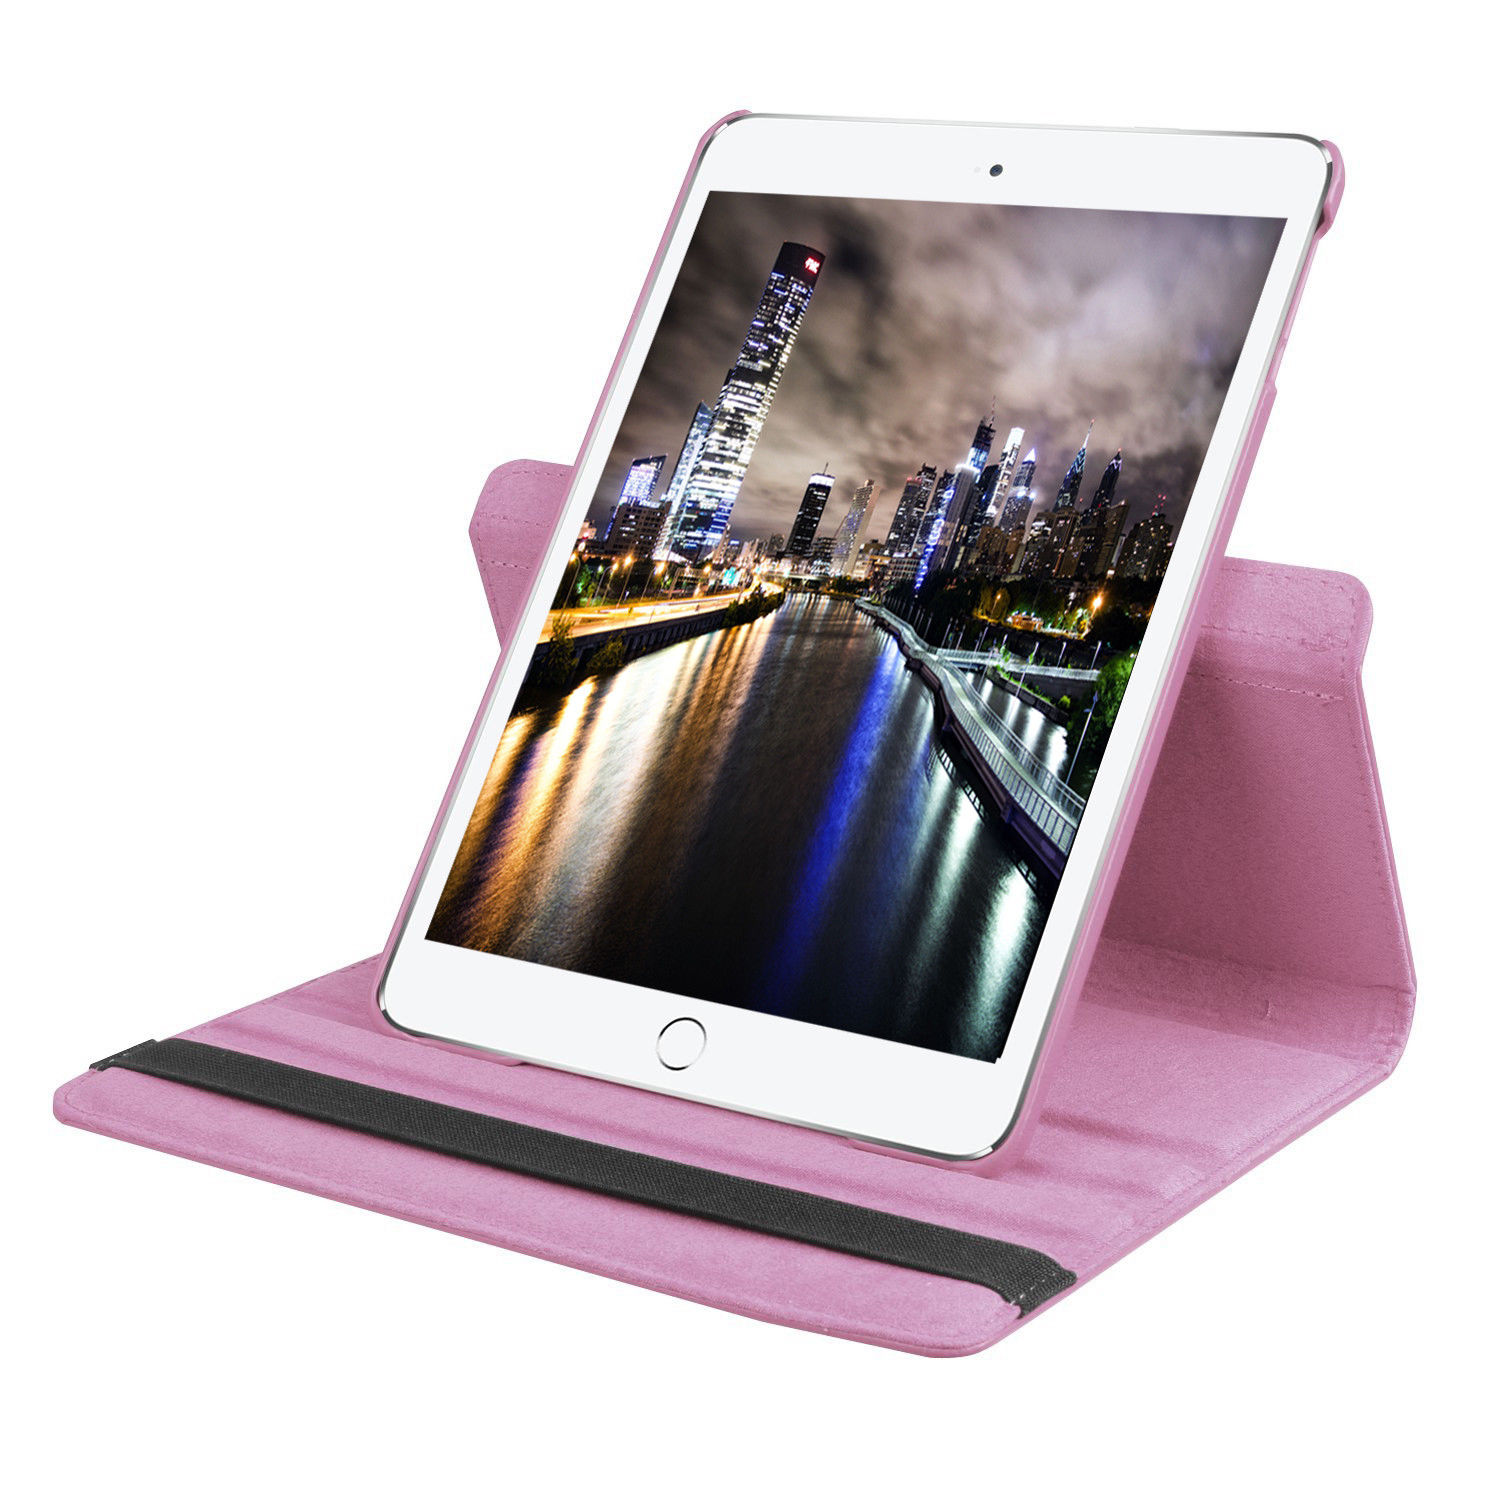 Custodia-per-Apple-iPad-Pro-2017-iPad-Air-3-10-5-Smart-Cover-Case-Custodia-Protettiva miniatura 69